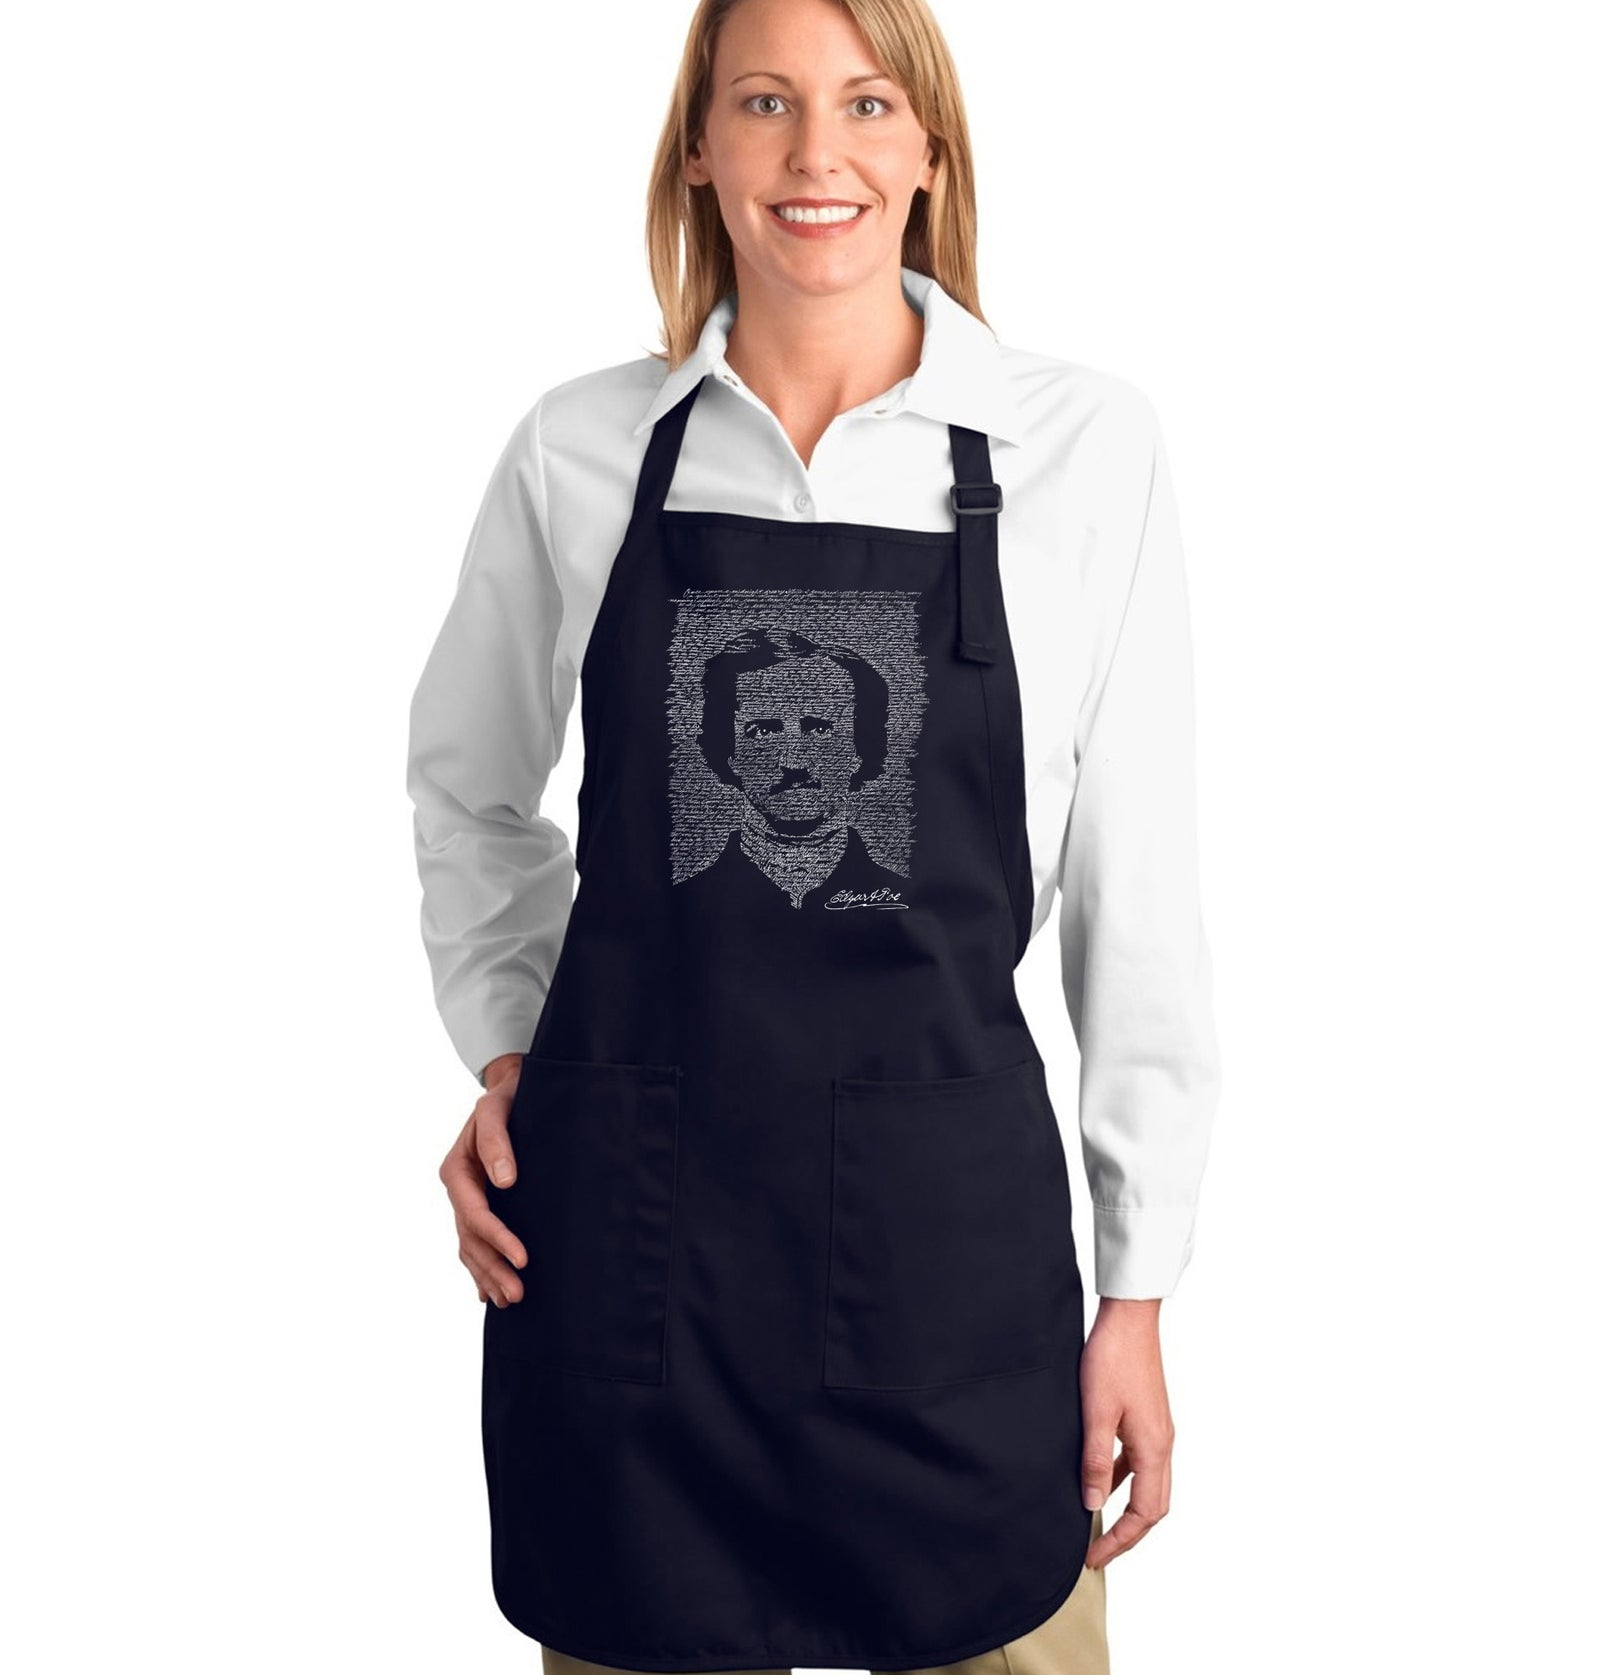 Full Length Apron - EDGAR ALLAN POE - THE RAVEN